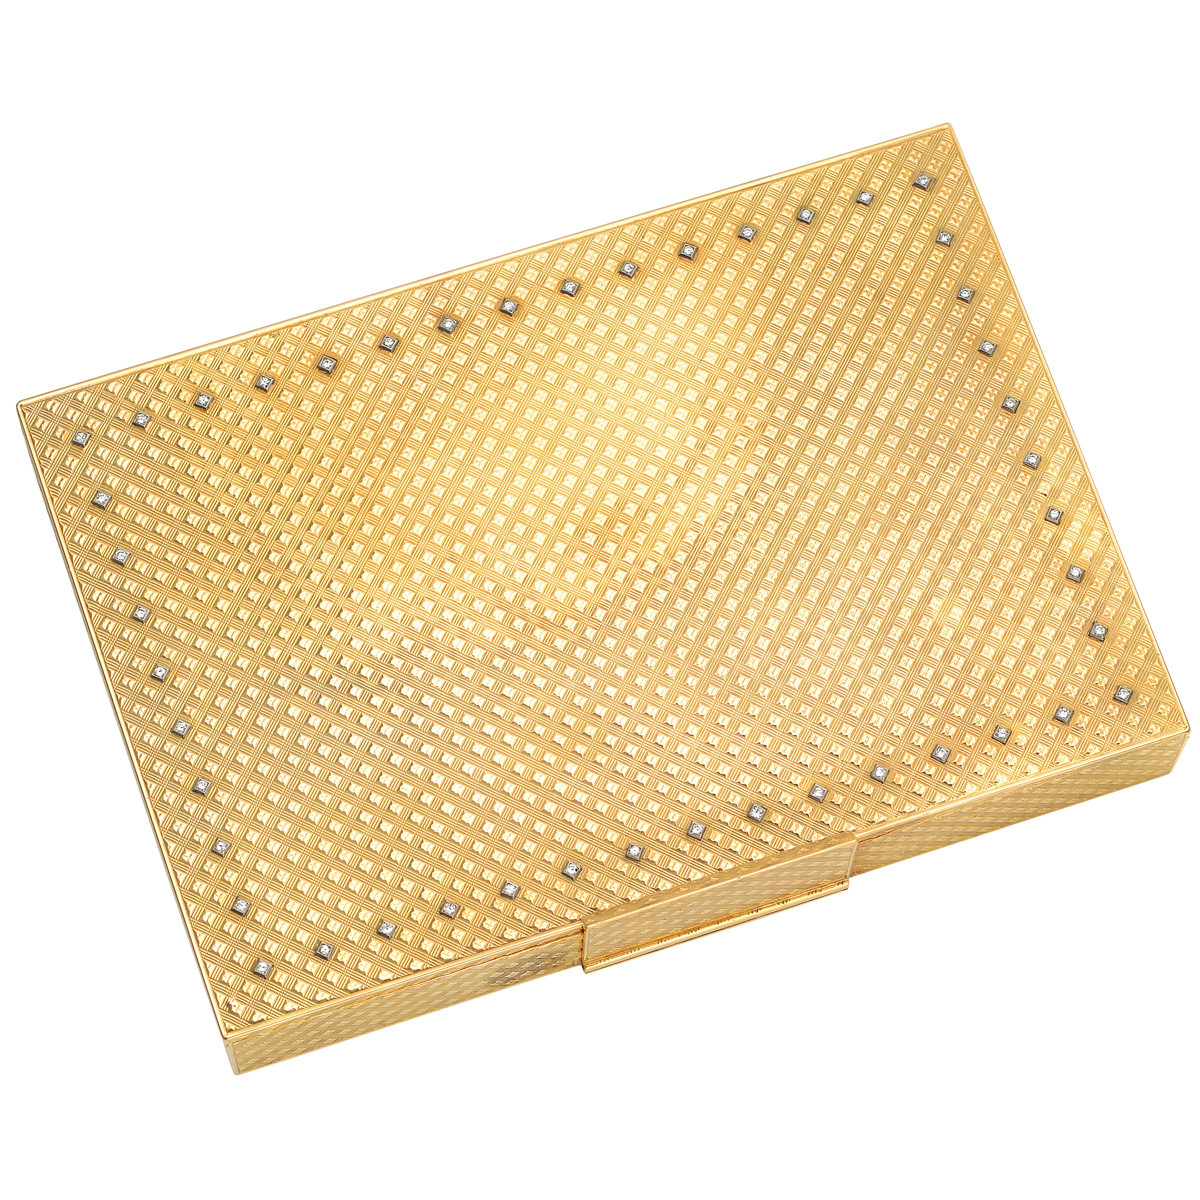 18k Yellow Gold Minaudière Vanity Case